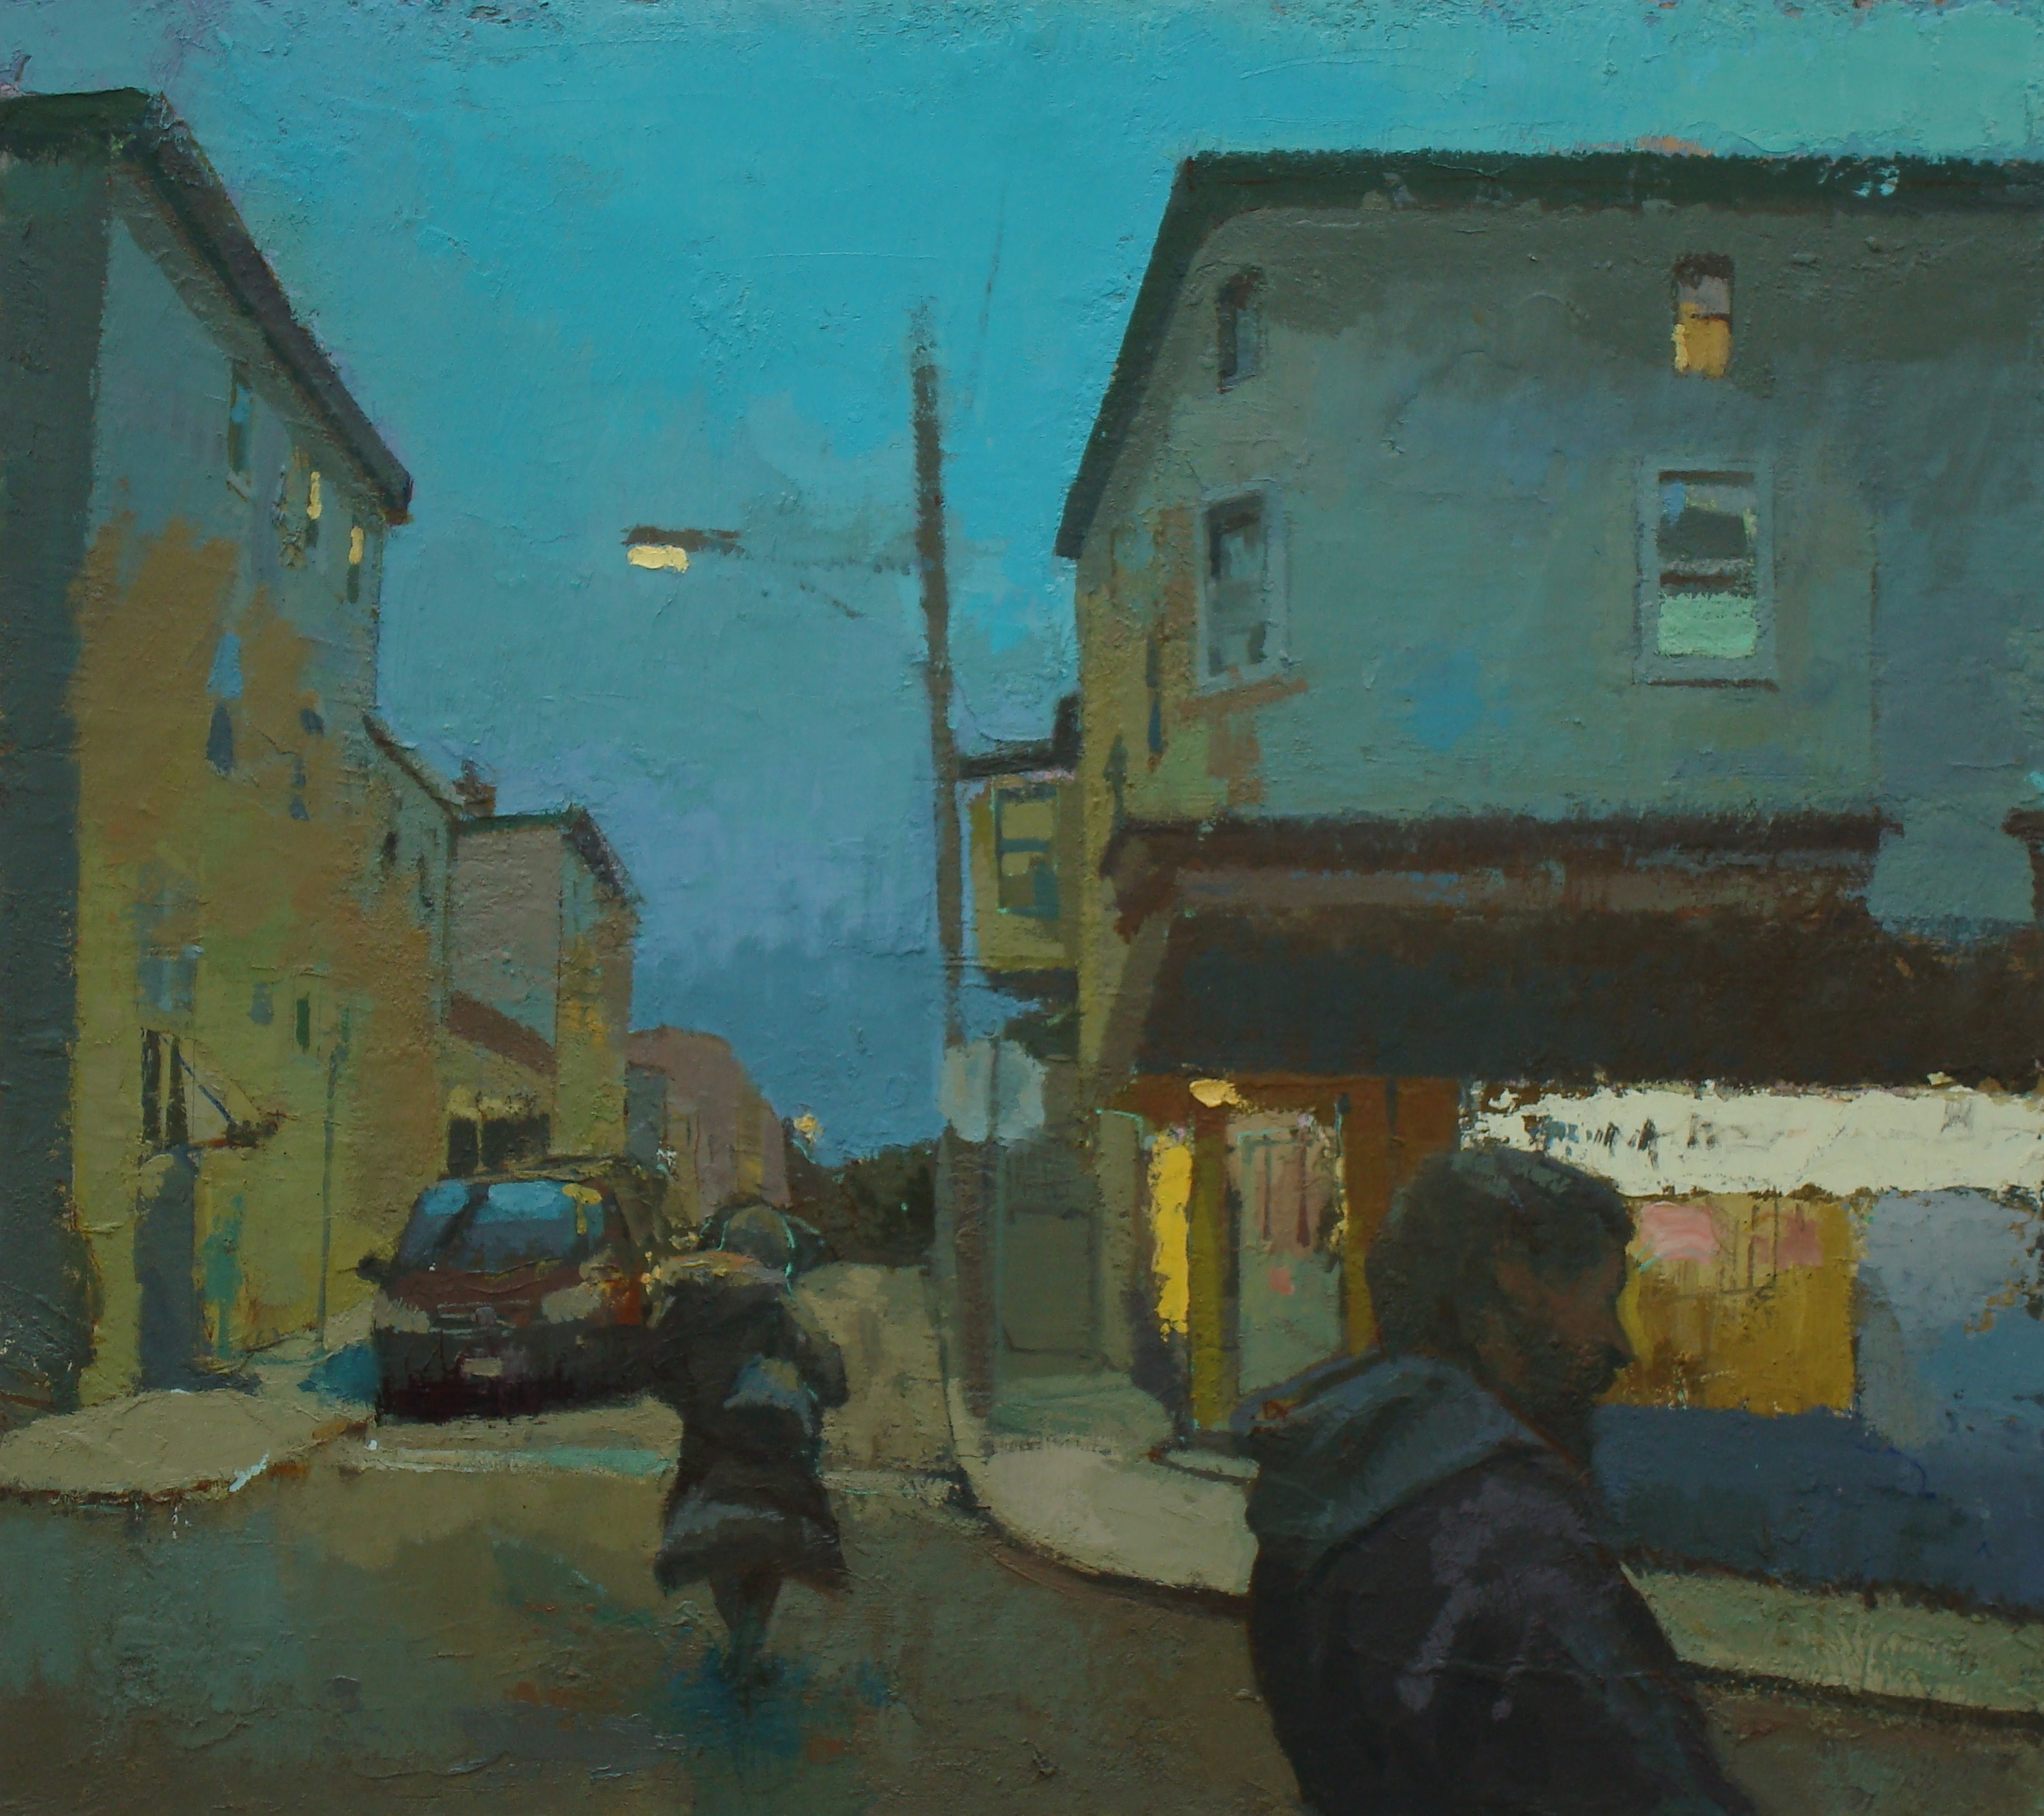 painter redd public relations corner store dusk oil on linen 24rdquo x 27rdquo 2014